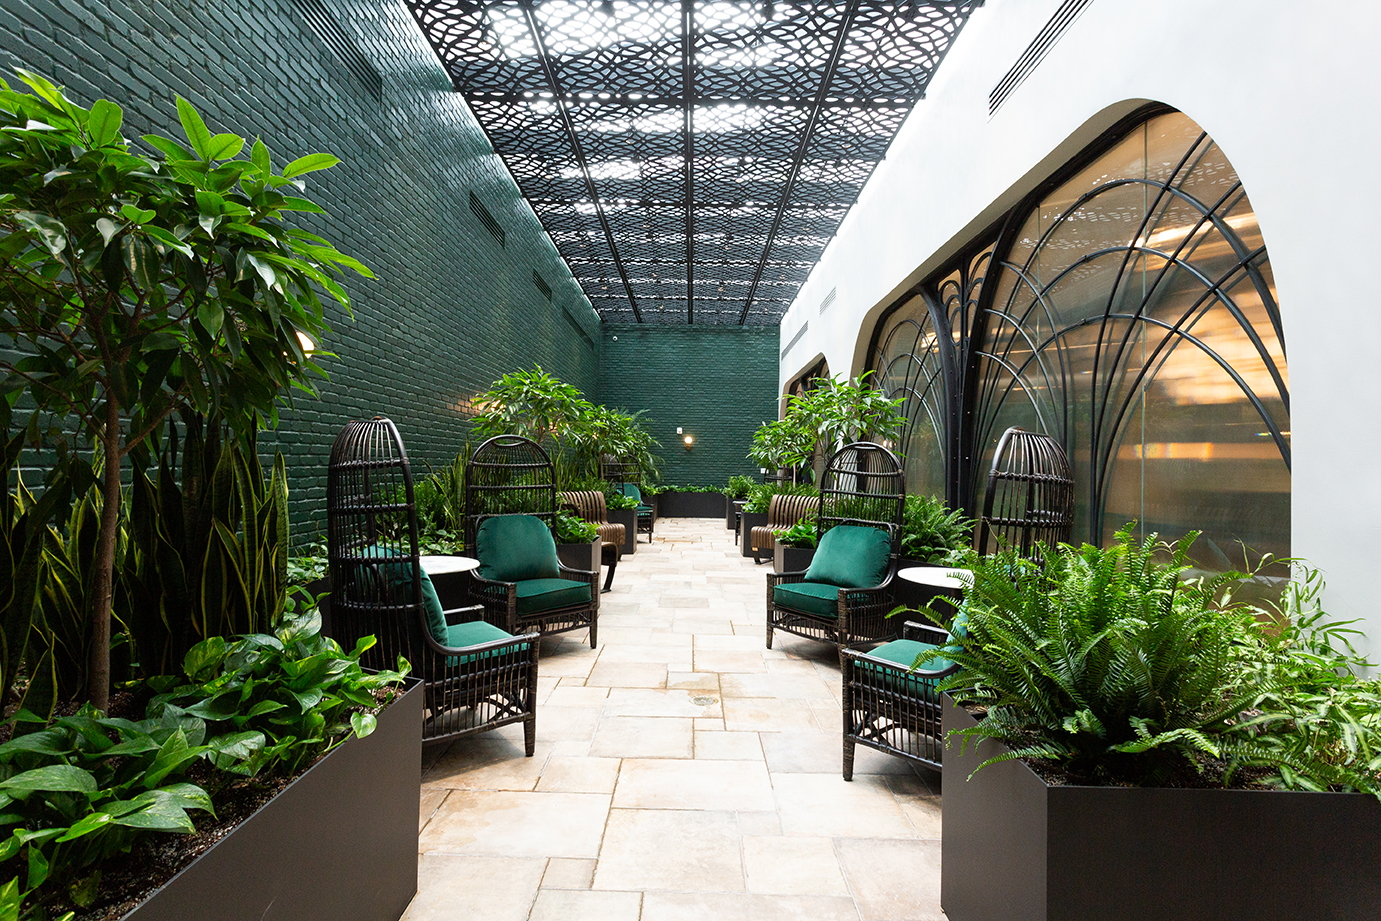 Interior courtyard of an apartment building